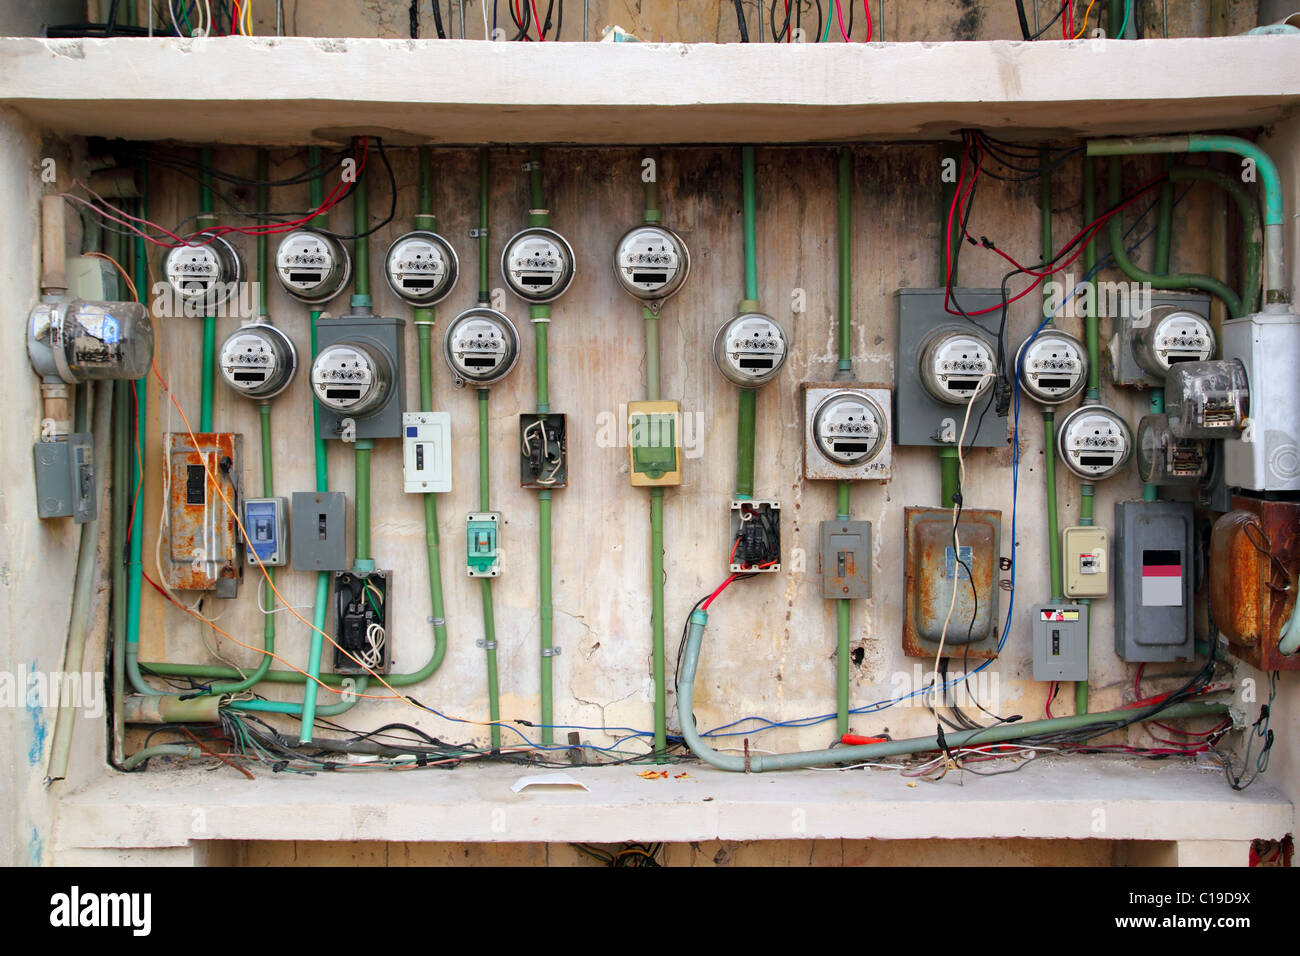 Dangerous Electrical Wiring Stock Photos A Outside Plug Electric Meter Messy Faulty Installation Image